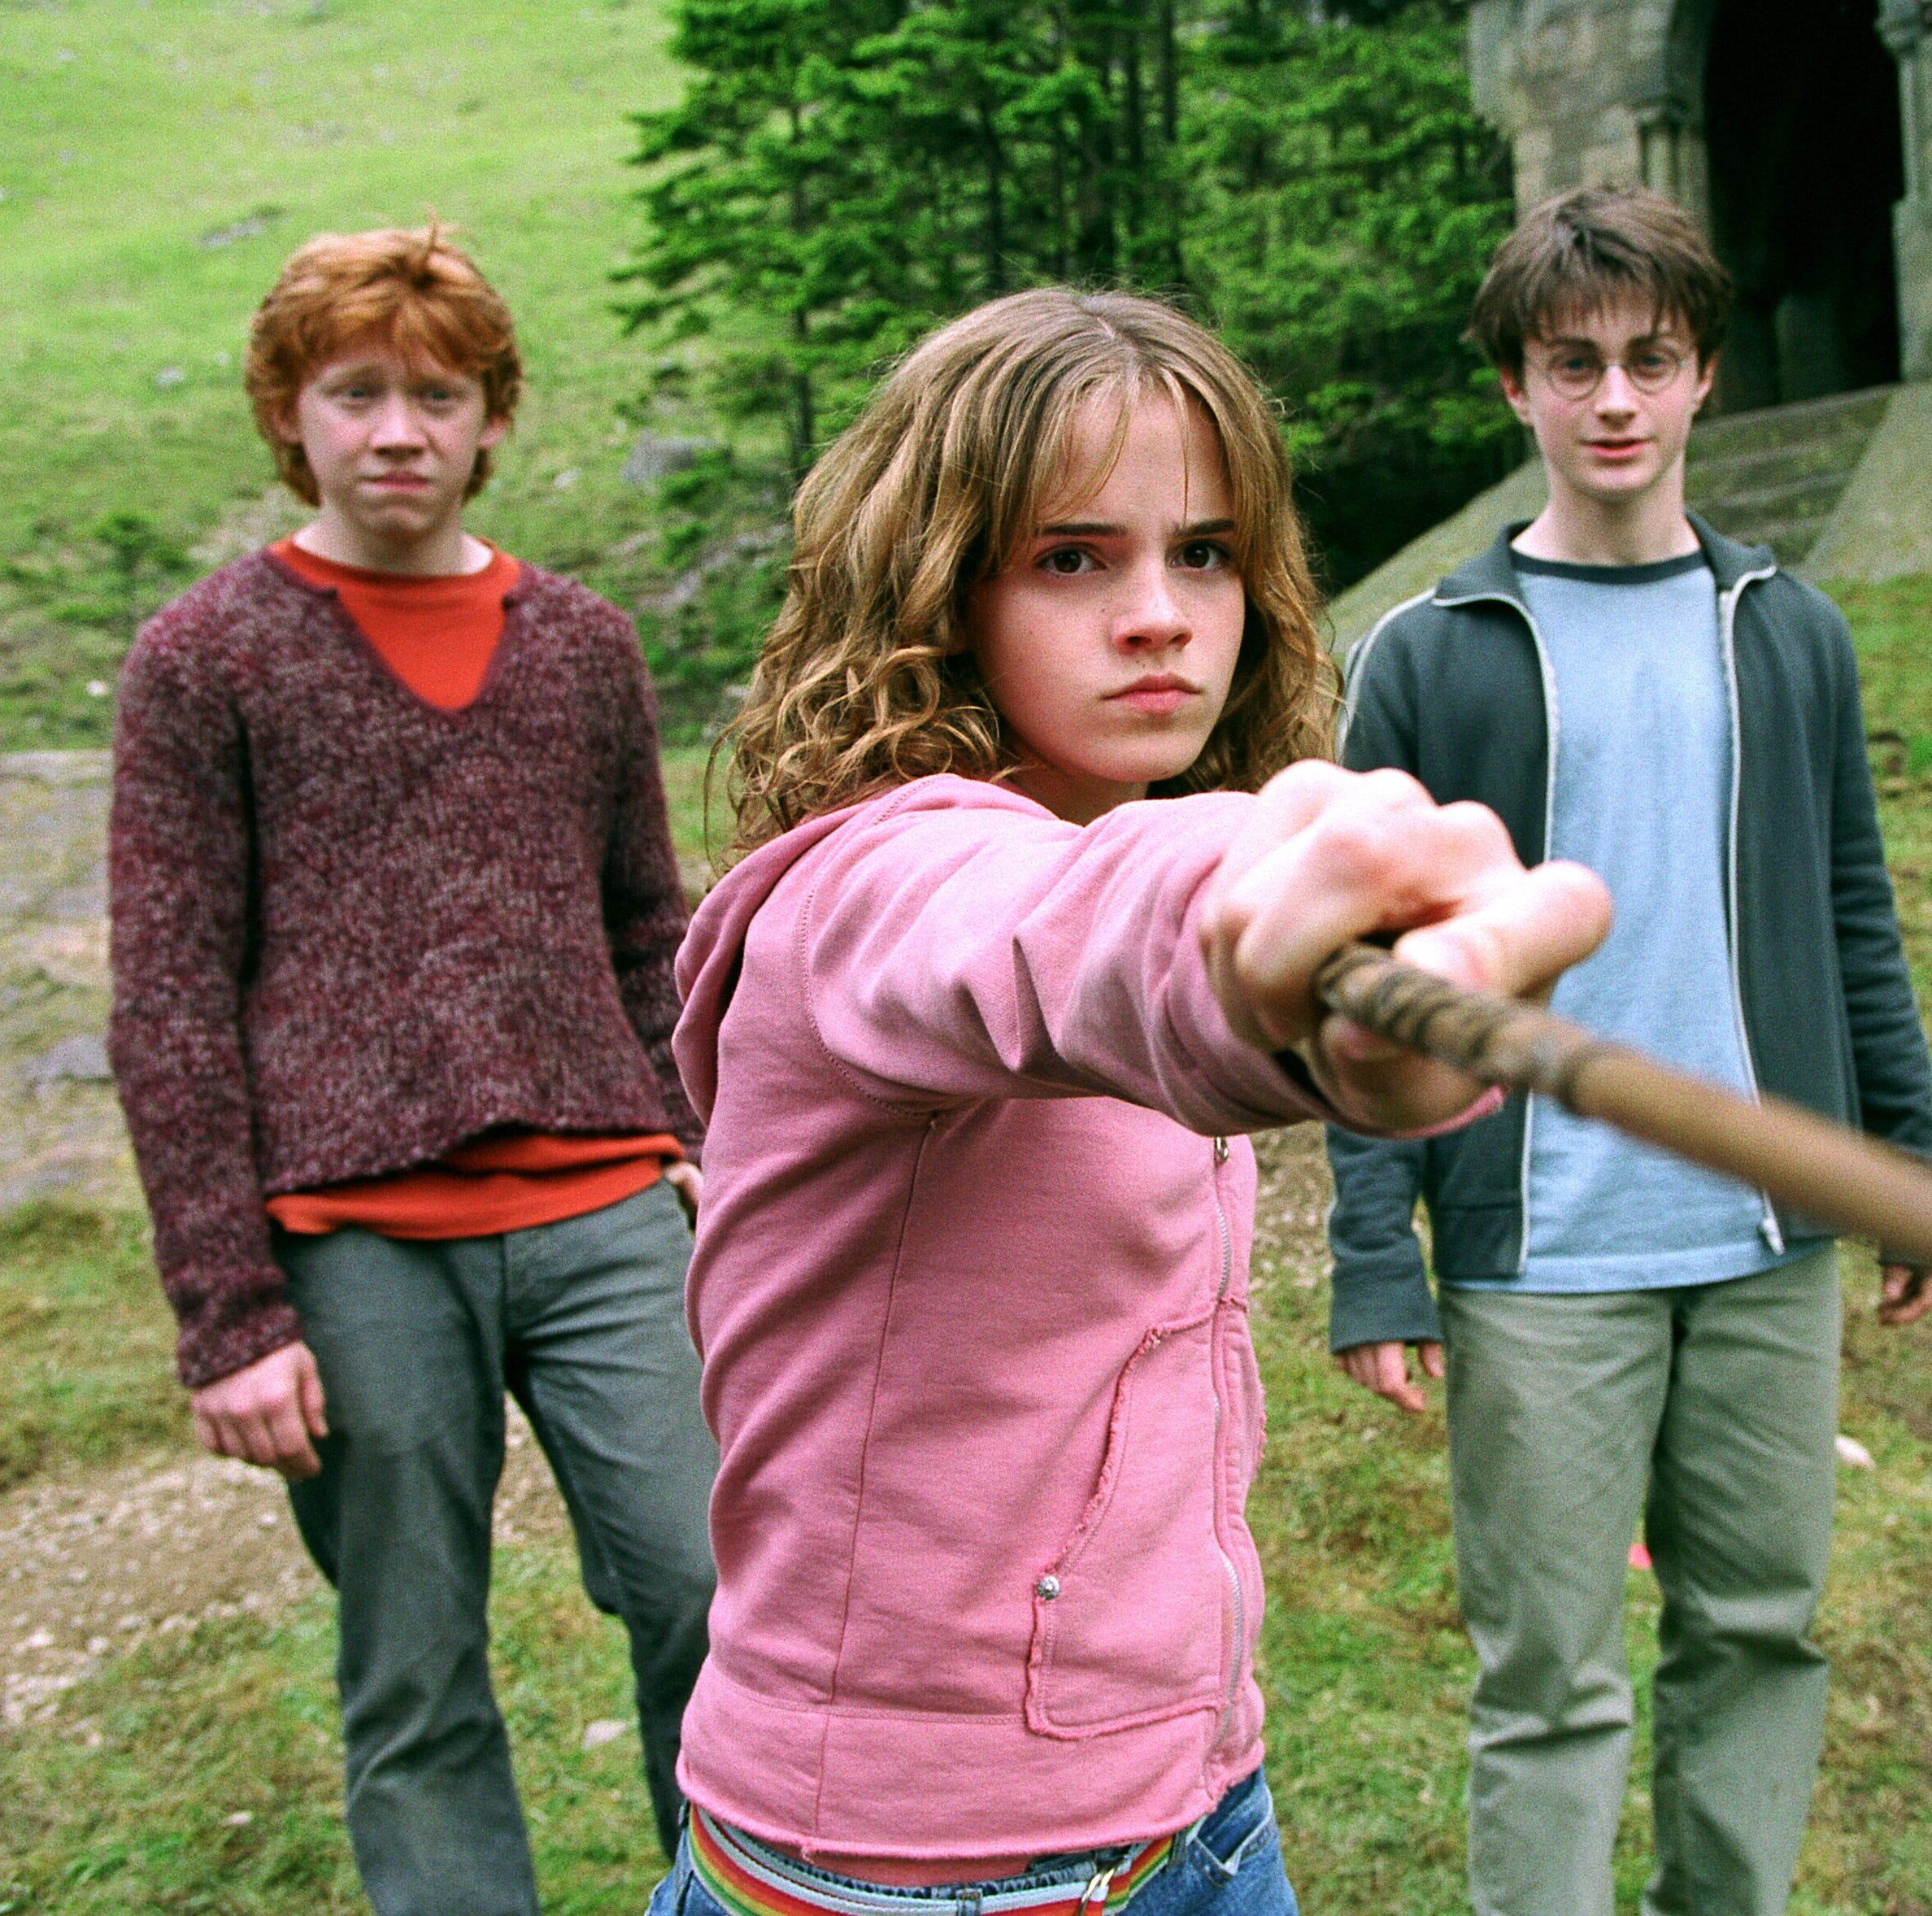 Wizards and witches, prepare: Harry Potter concert series returning to Des Moines